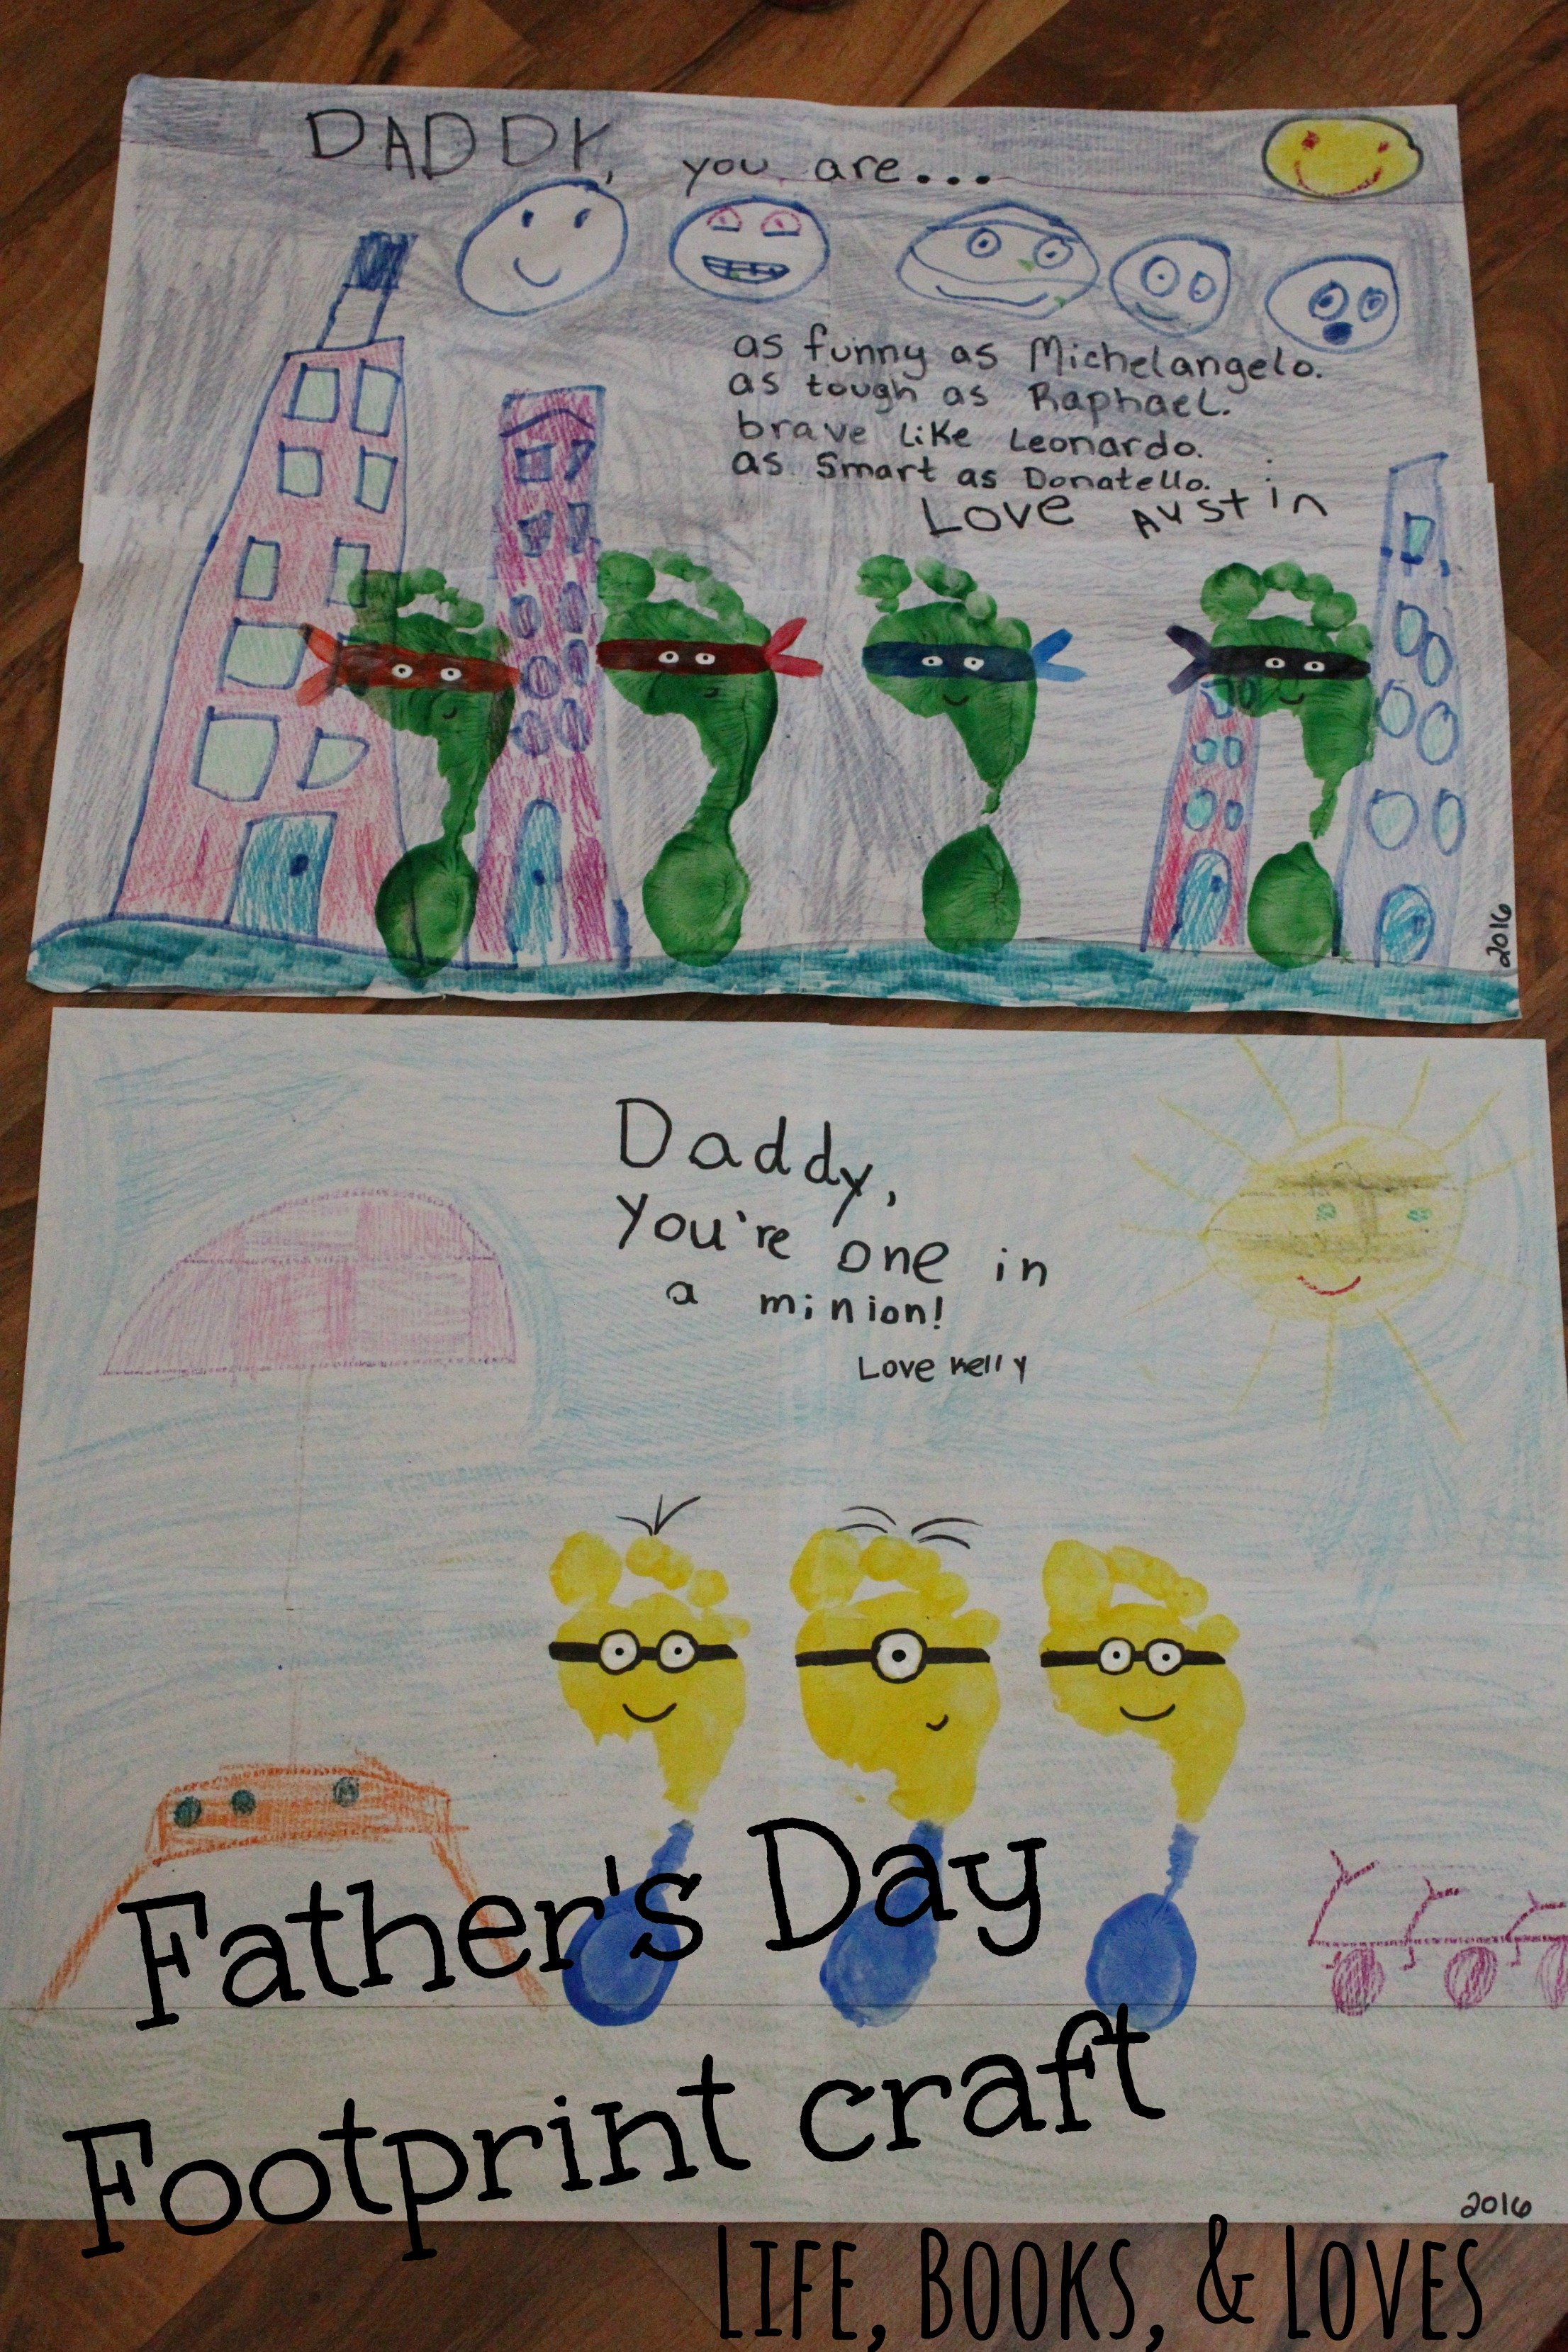 Fathers Day Footprint Craft - Life Books Loves